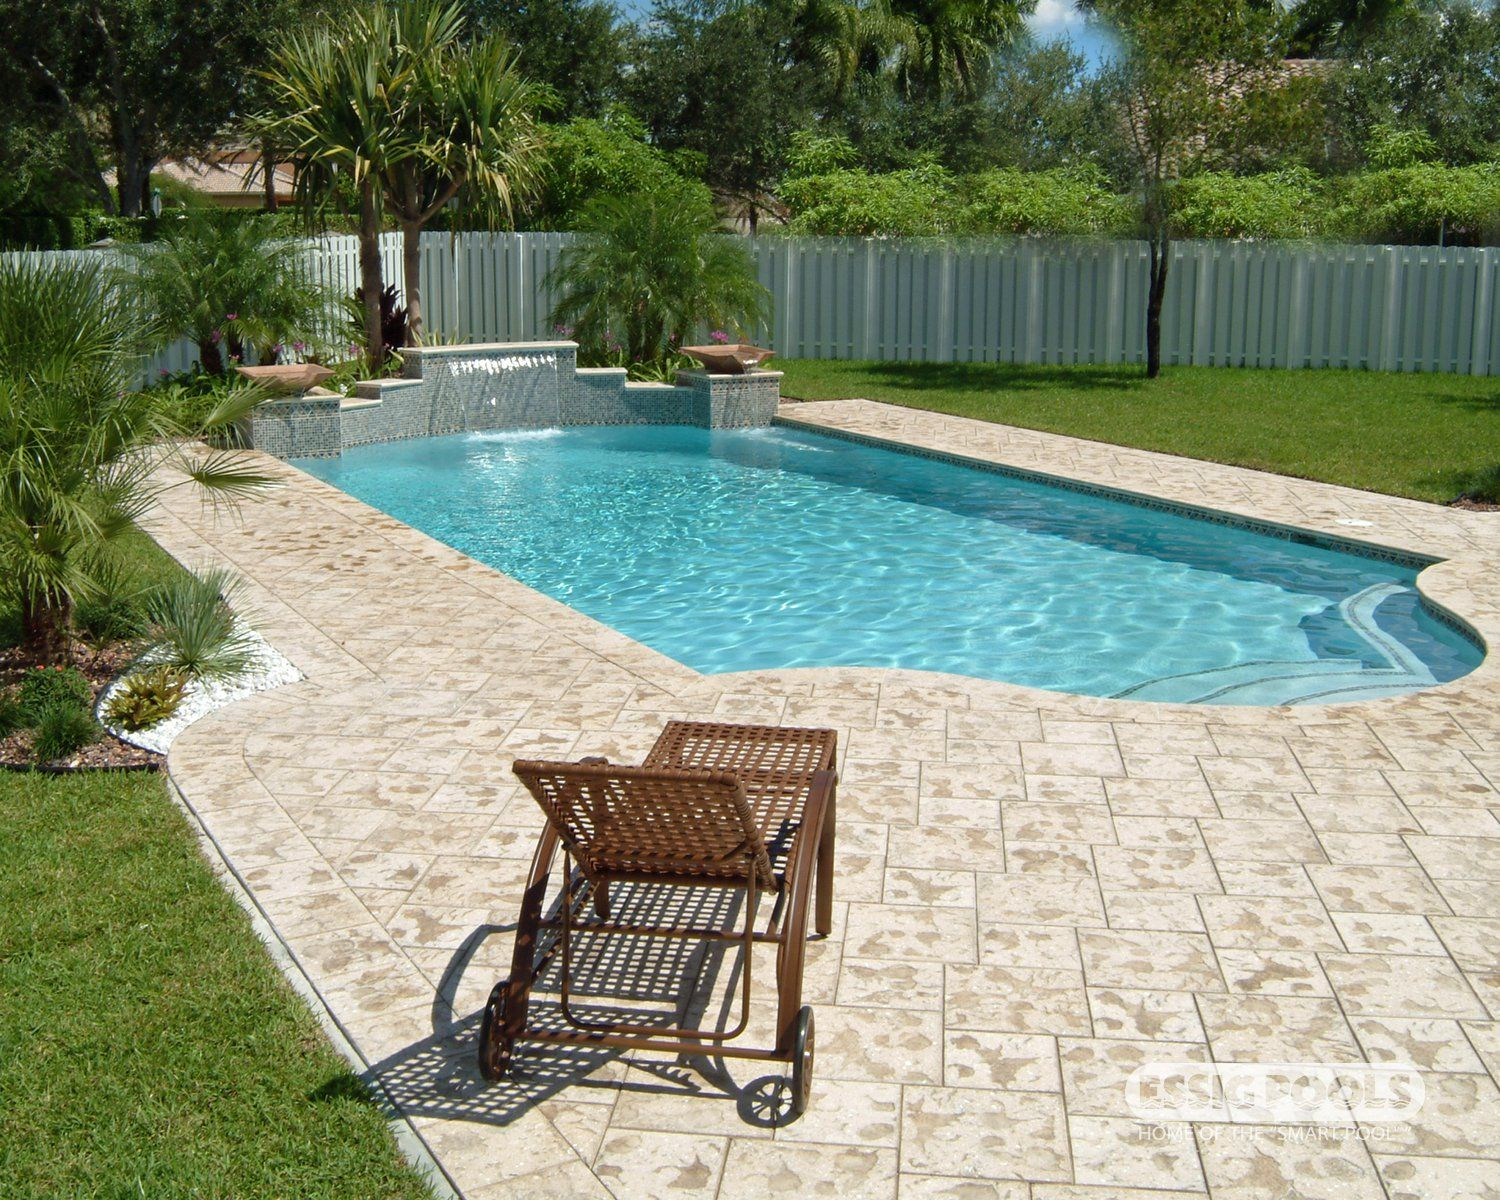 deck by artistic paver mfg pool by essig pools see more at www